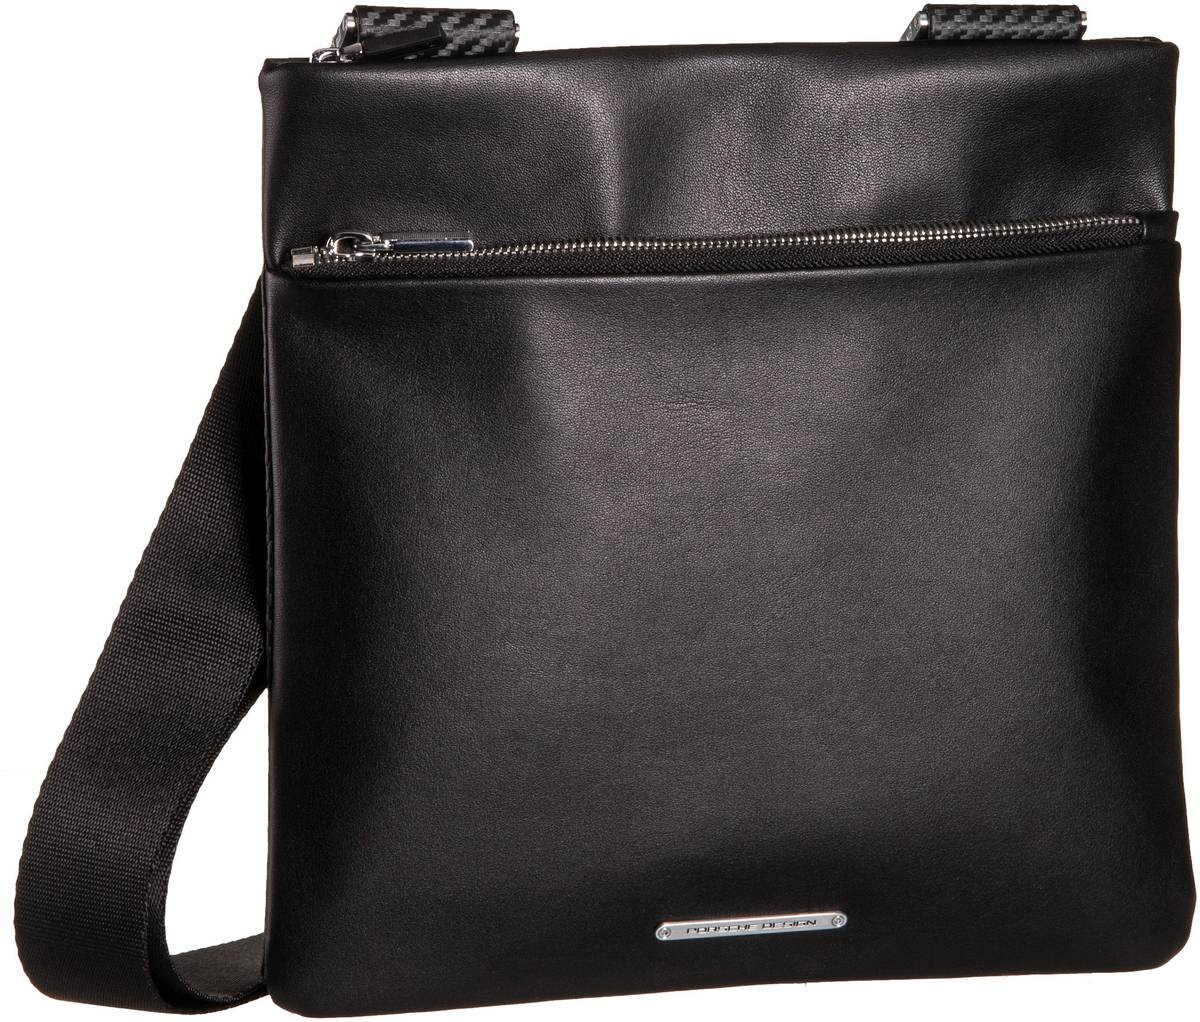 Umhängetasche CL2 2.0 ShoulderBag XSVZ Black